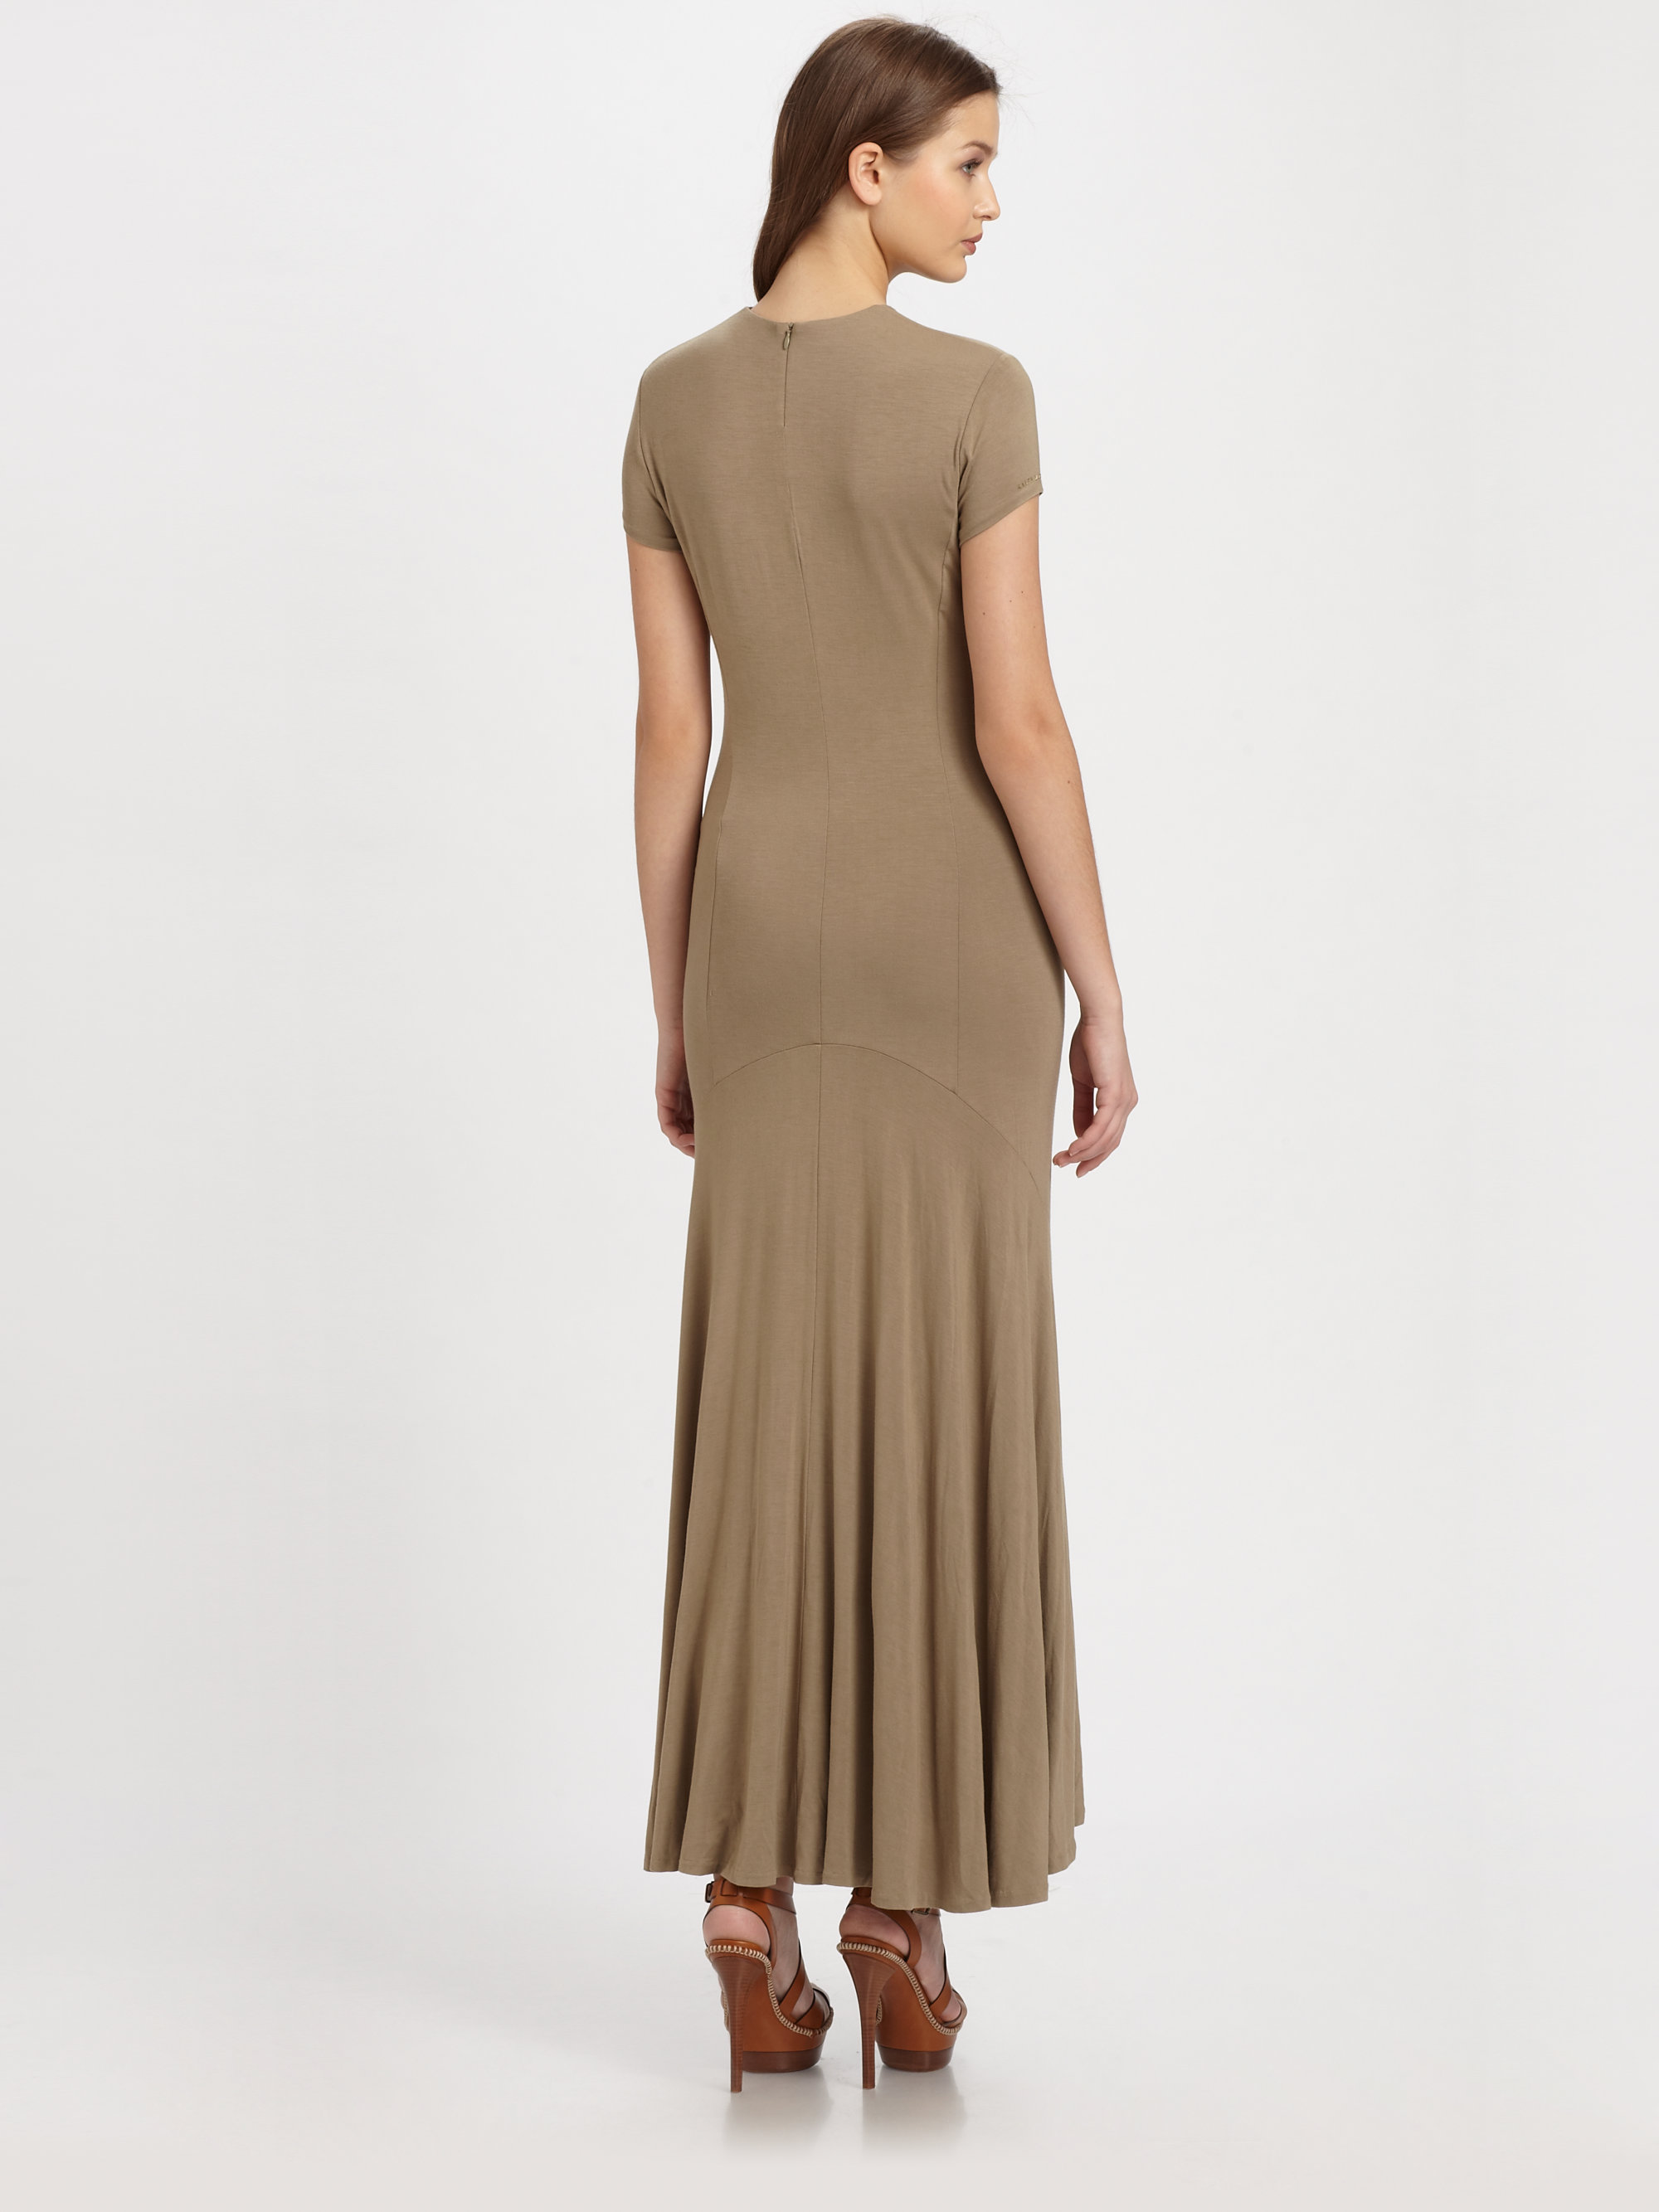 Lyst - Ralph Lauren Blue Label Jersey Knit Maxi Dress in Brown